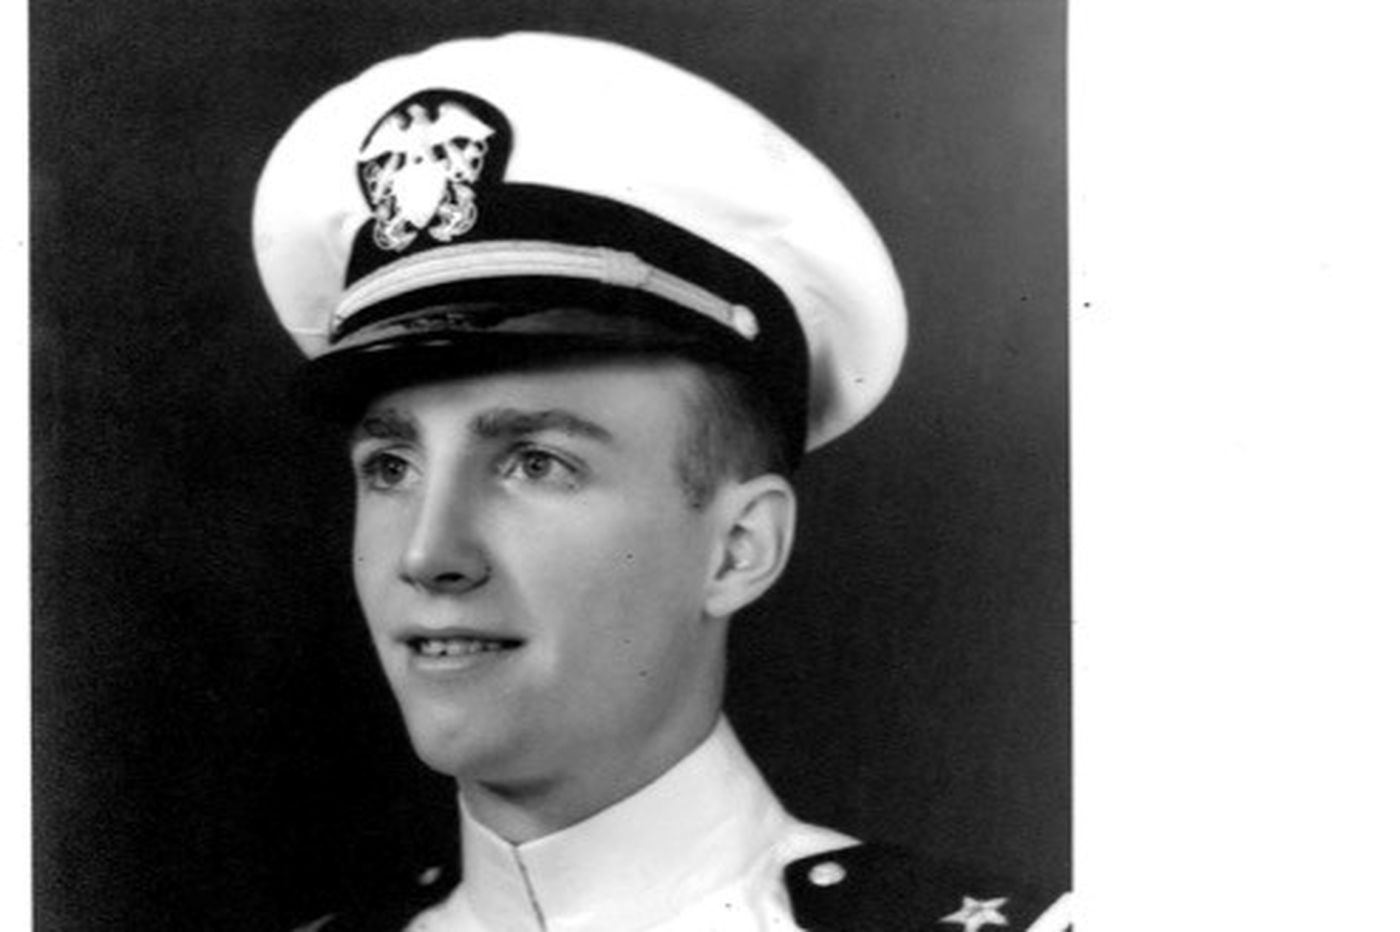 Richard J. Crosbie, 96, Navy physicist whose research paved way for space flight